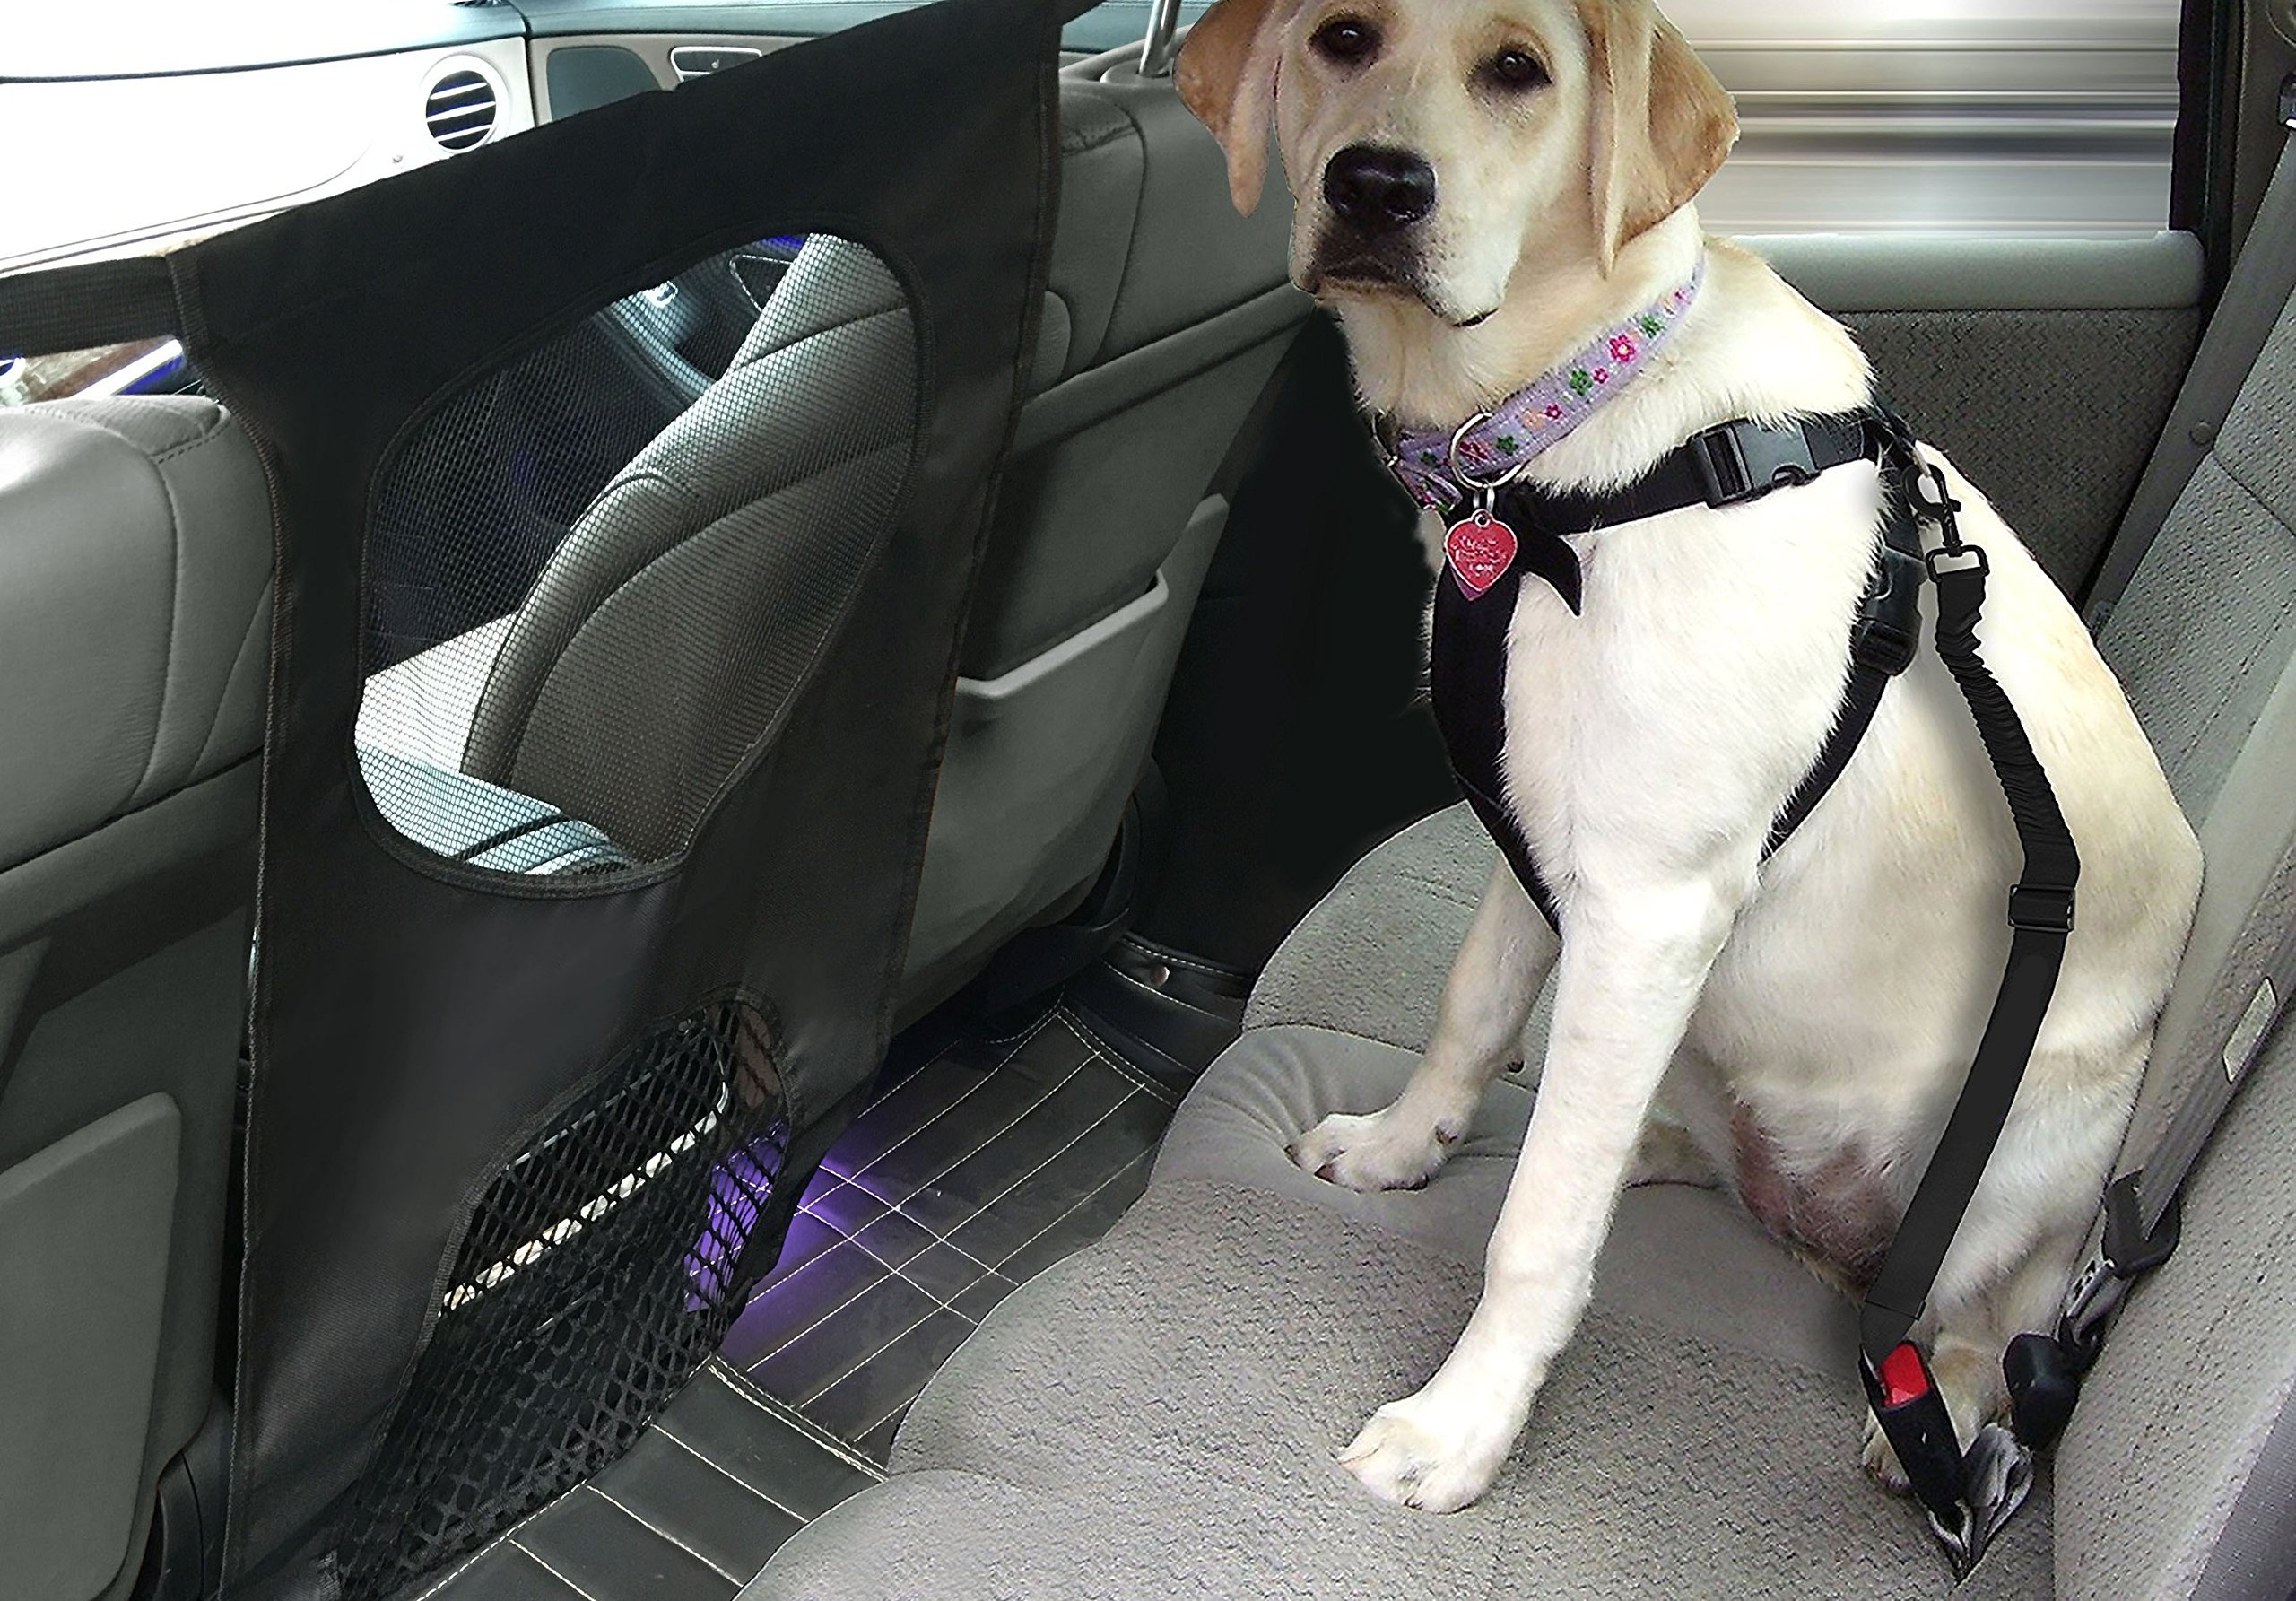 Lifepul Pet Net Barrier (TM) Dogs Backseat Barrier Mesh Obstacle Dog Car Fence Mesh, to Keep Your Pets and Drivers Safety inTravel, One Size Fit Most & Easy to Install for Car,SUV,Truck, by Lifepul (Image #7)